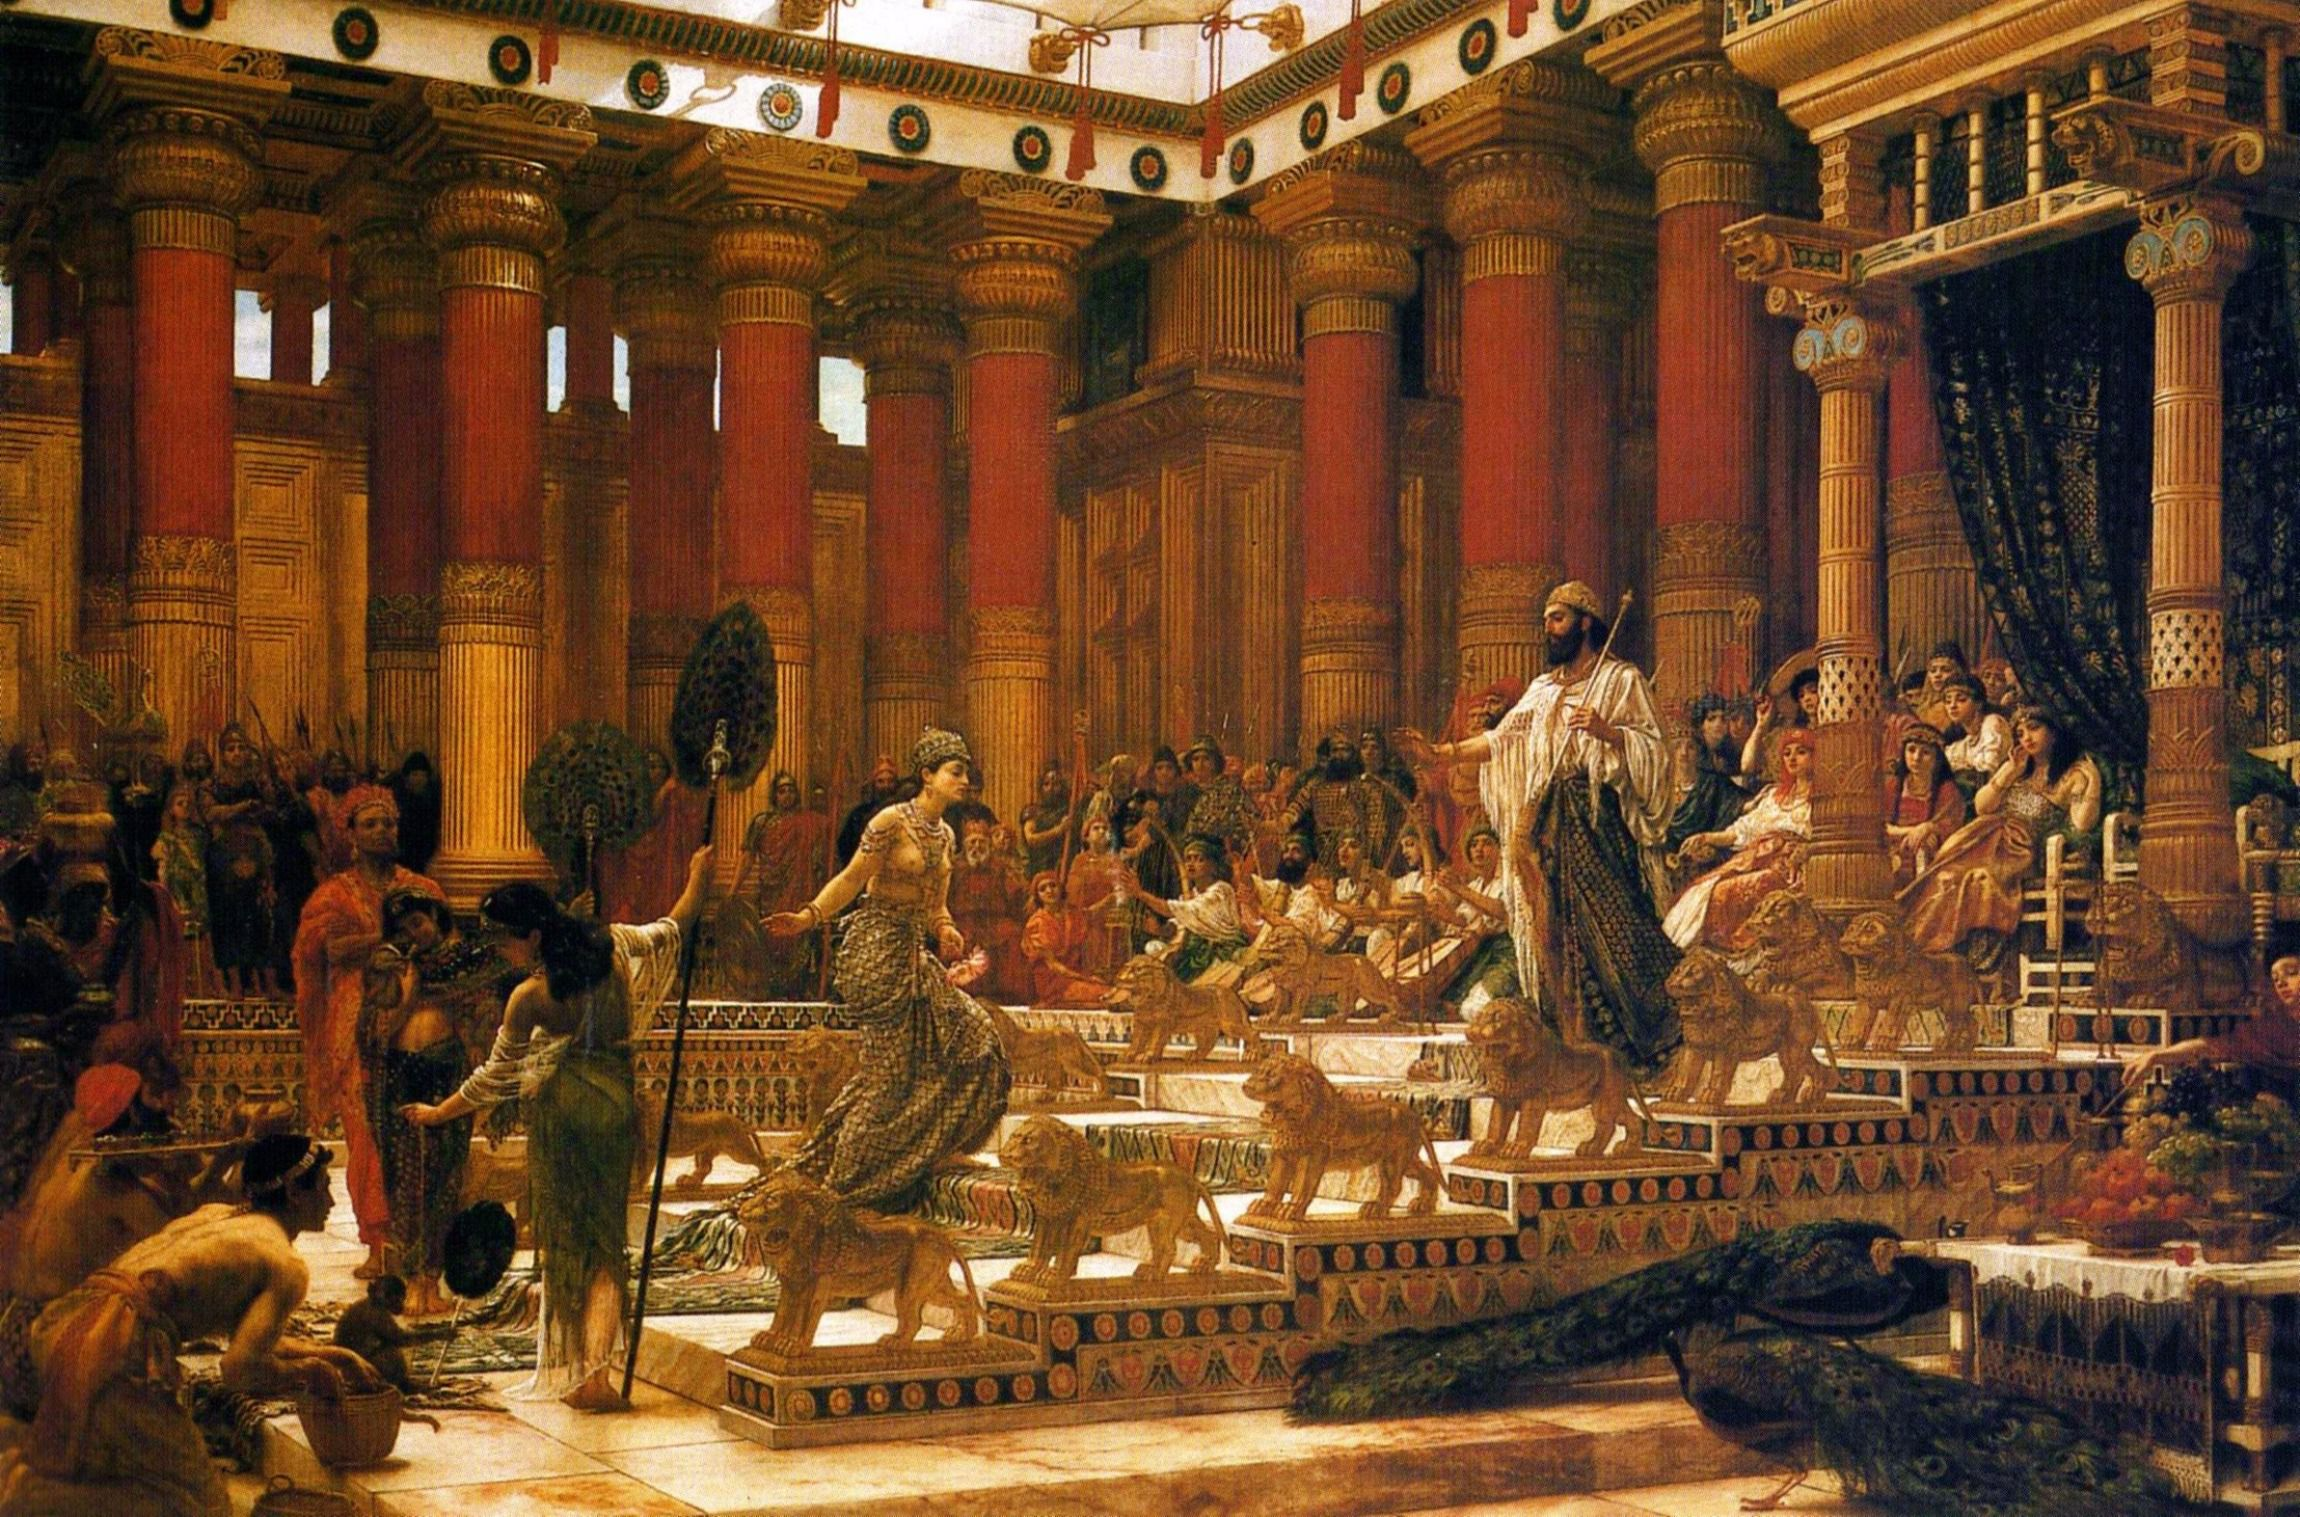 This 1890 oil painting depicts the Queen of Sheba's visit to the court of King Solomon, whose wealth was and is legendary.